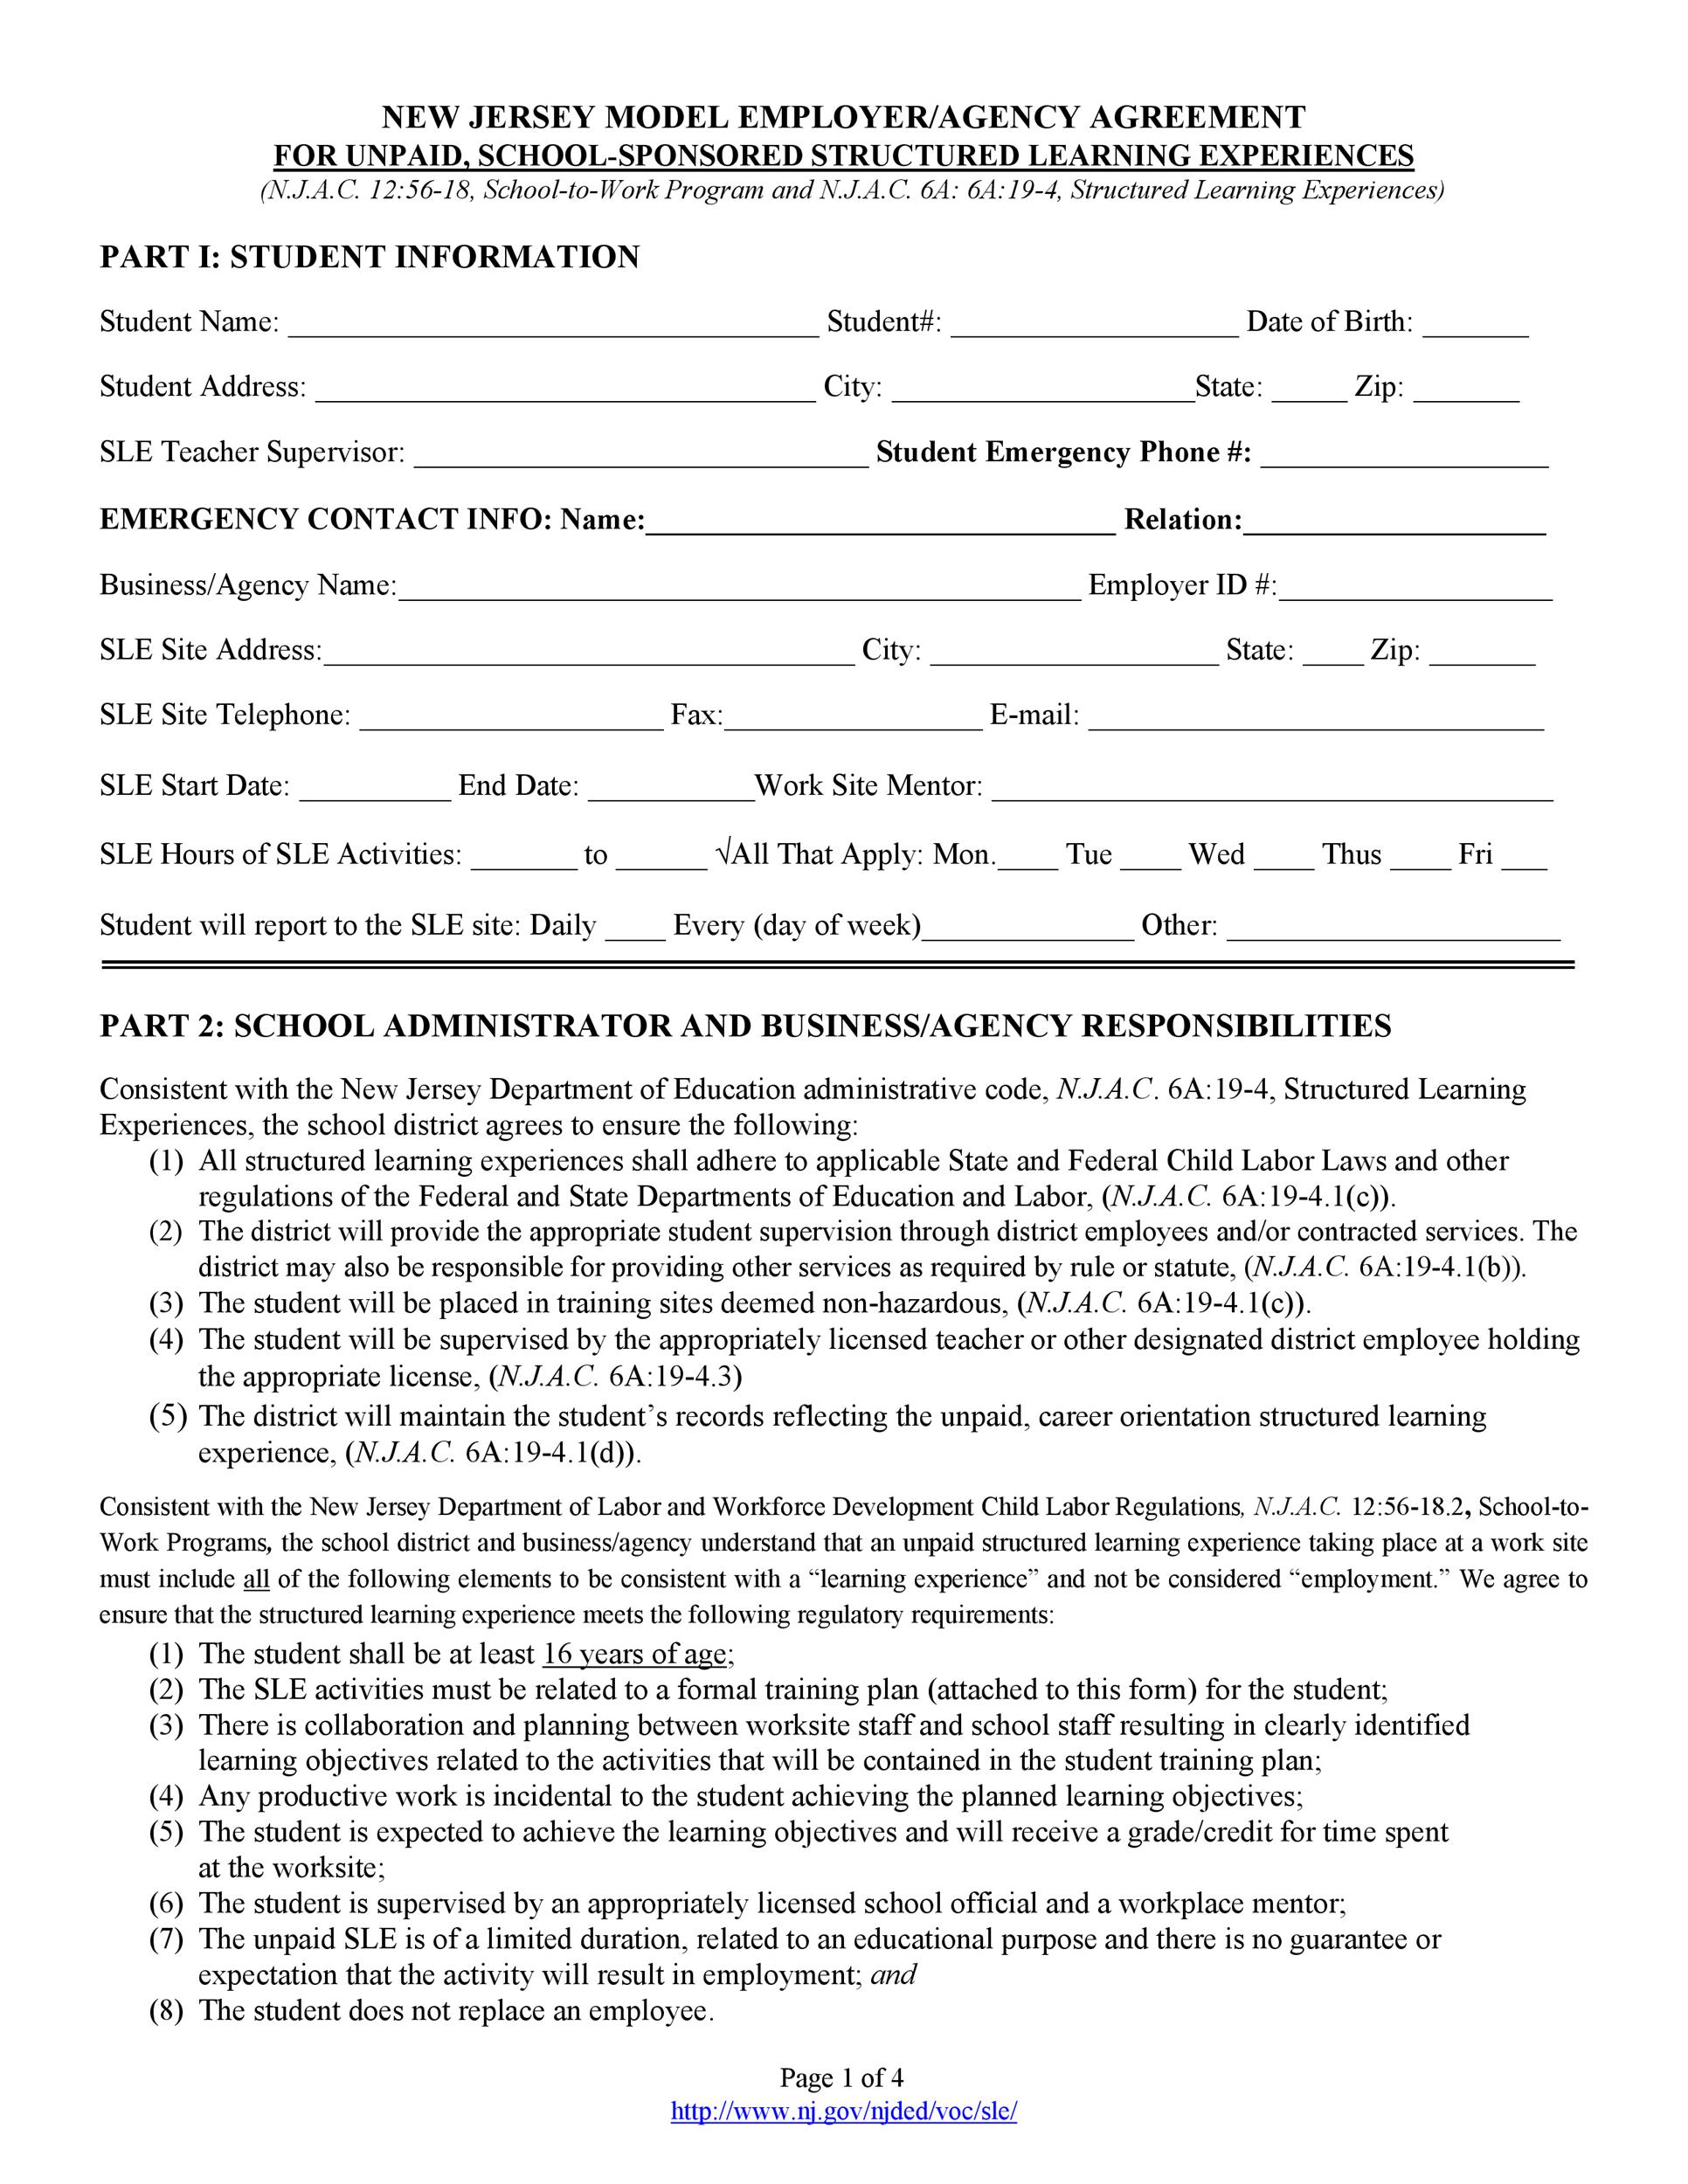 Free agency agreement 40